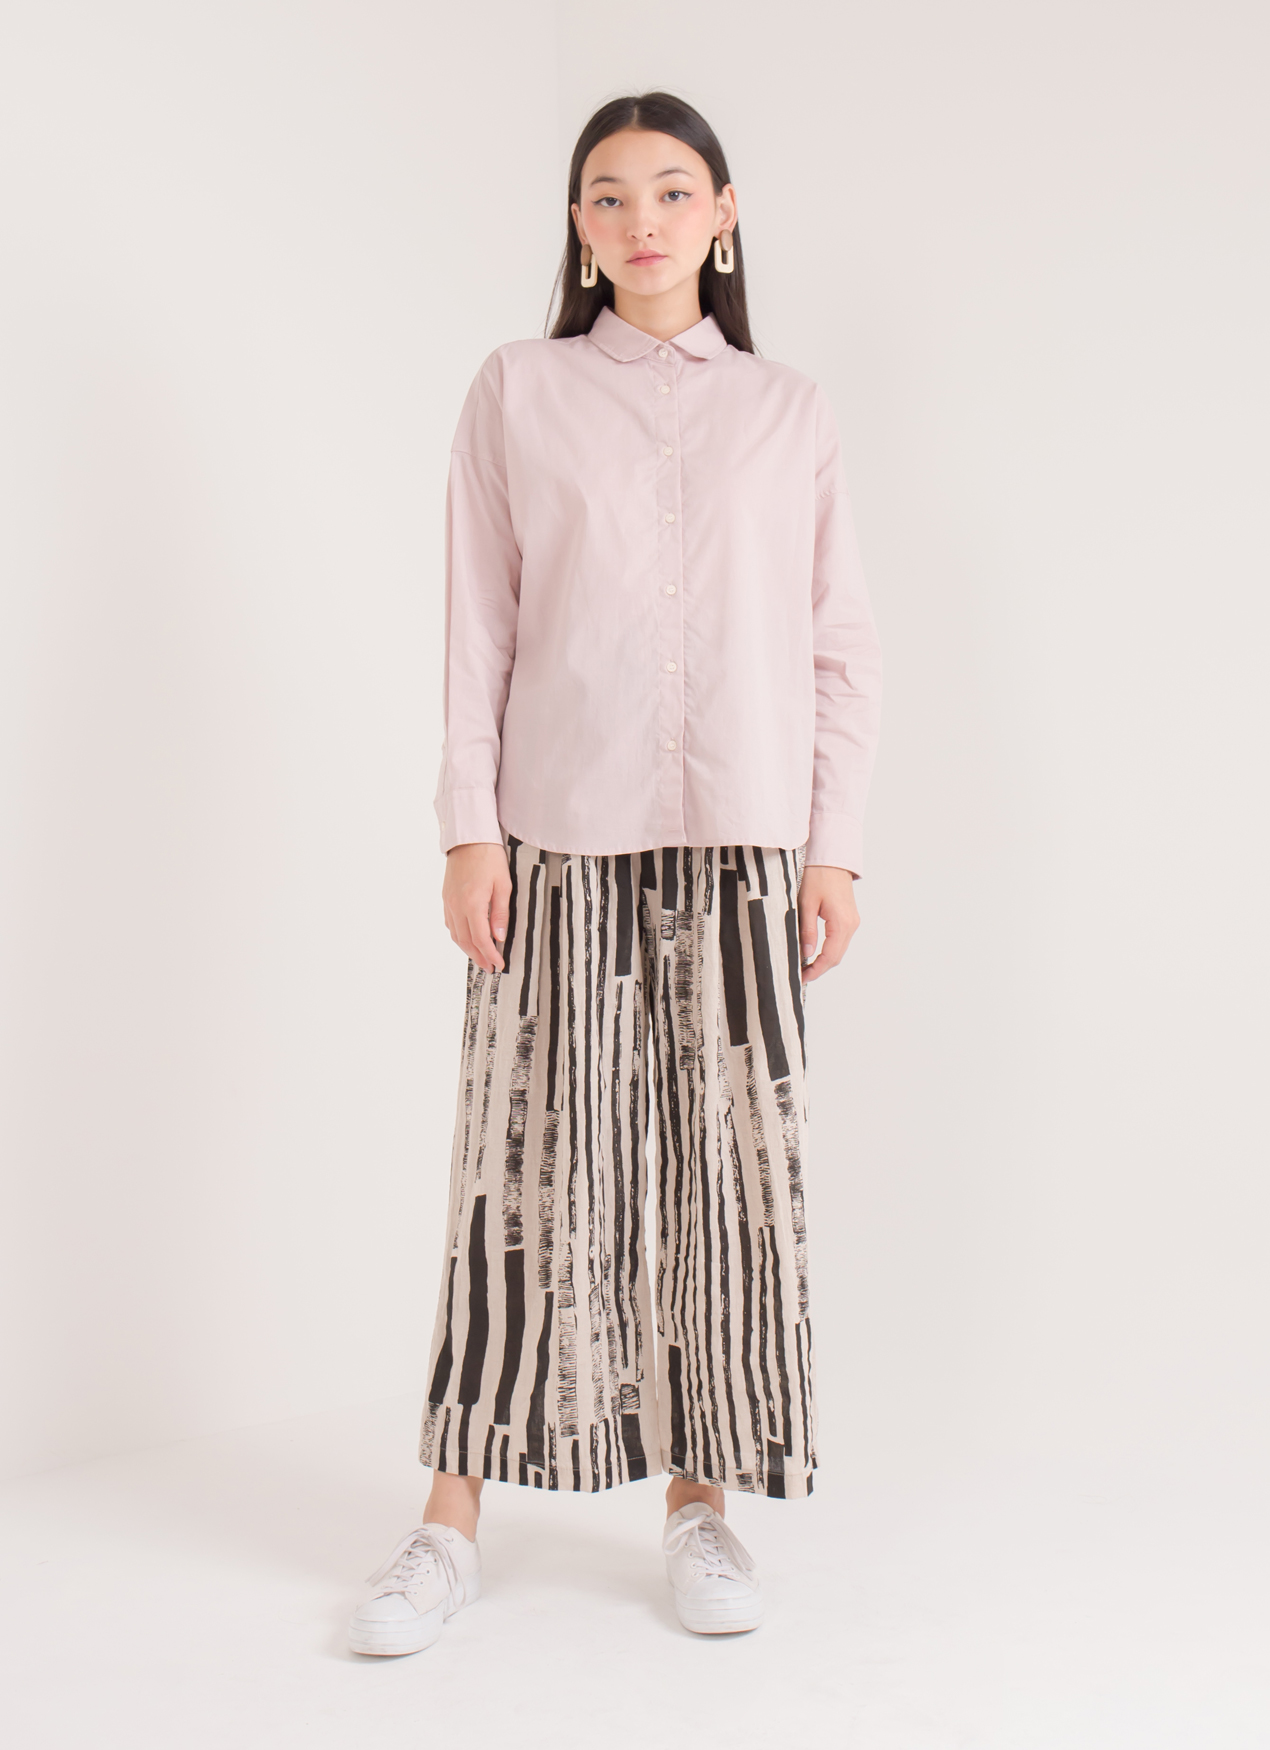 Earth, Music & Ecology Nanda Top - Pink Beige